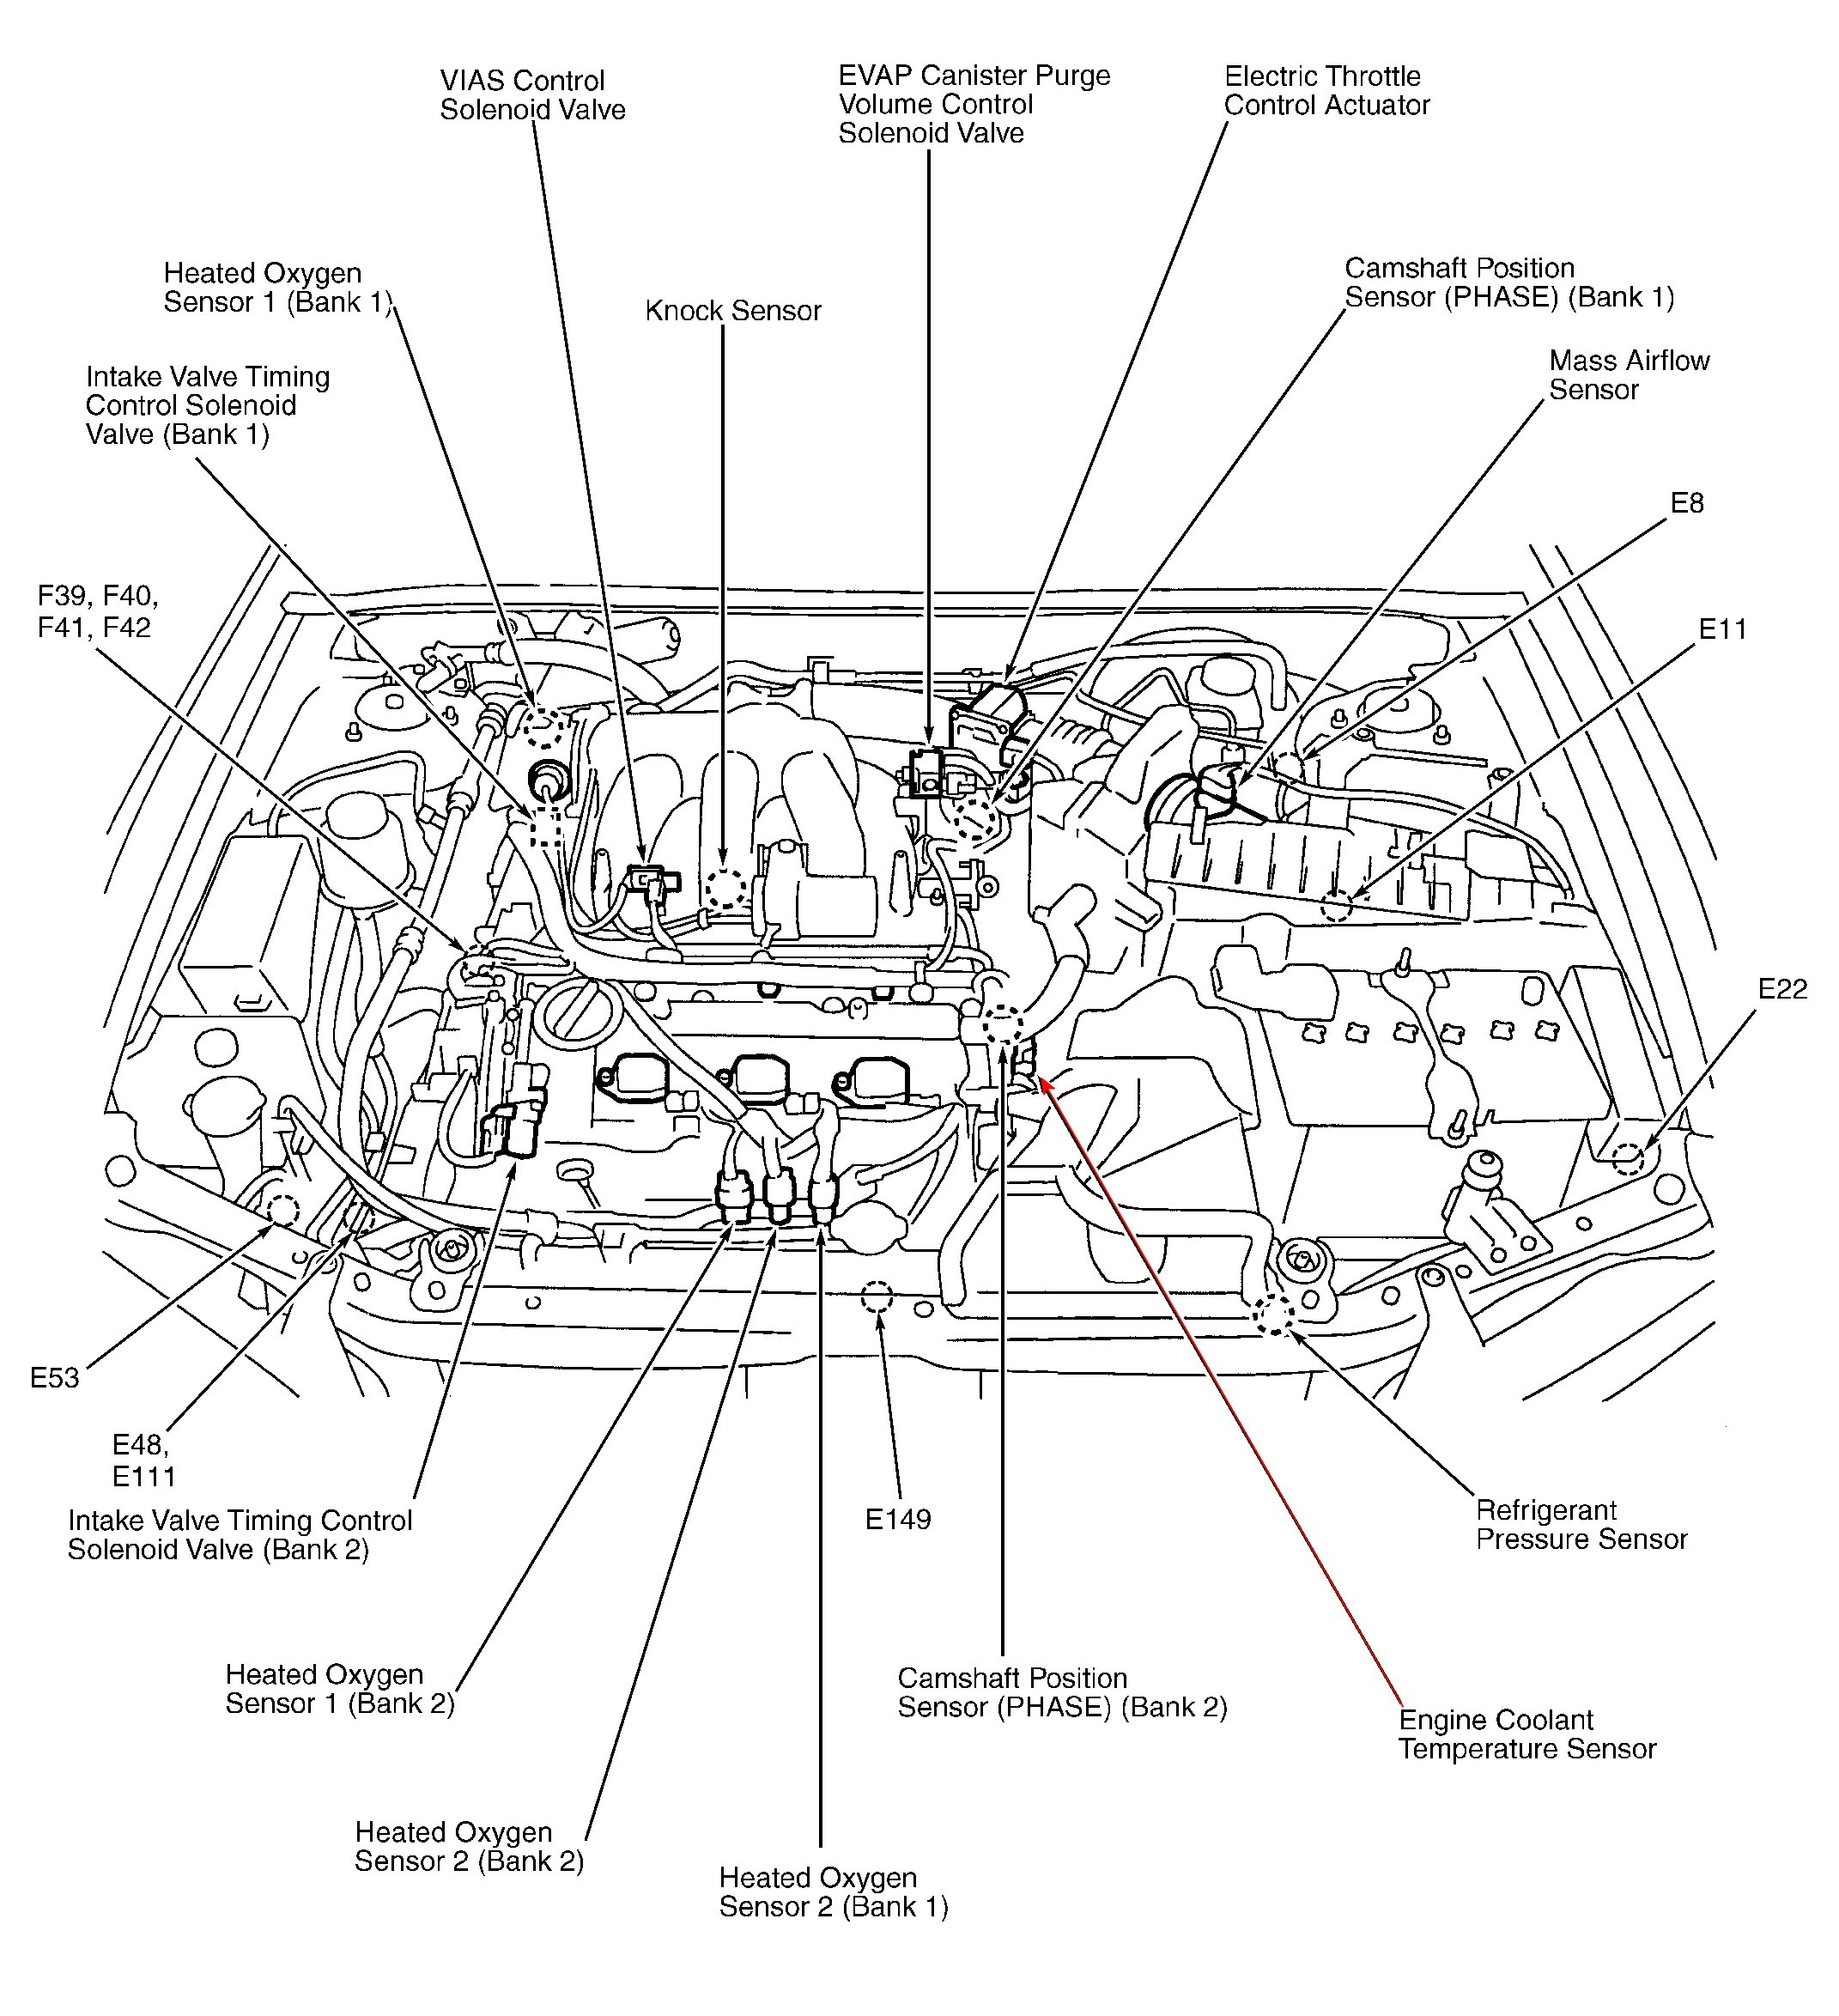 Kia Spectra Engine Diagram Nissan Sentra Engine Diagram 1997 Nissan Sentra  2007 Kia Spectra Of Kia